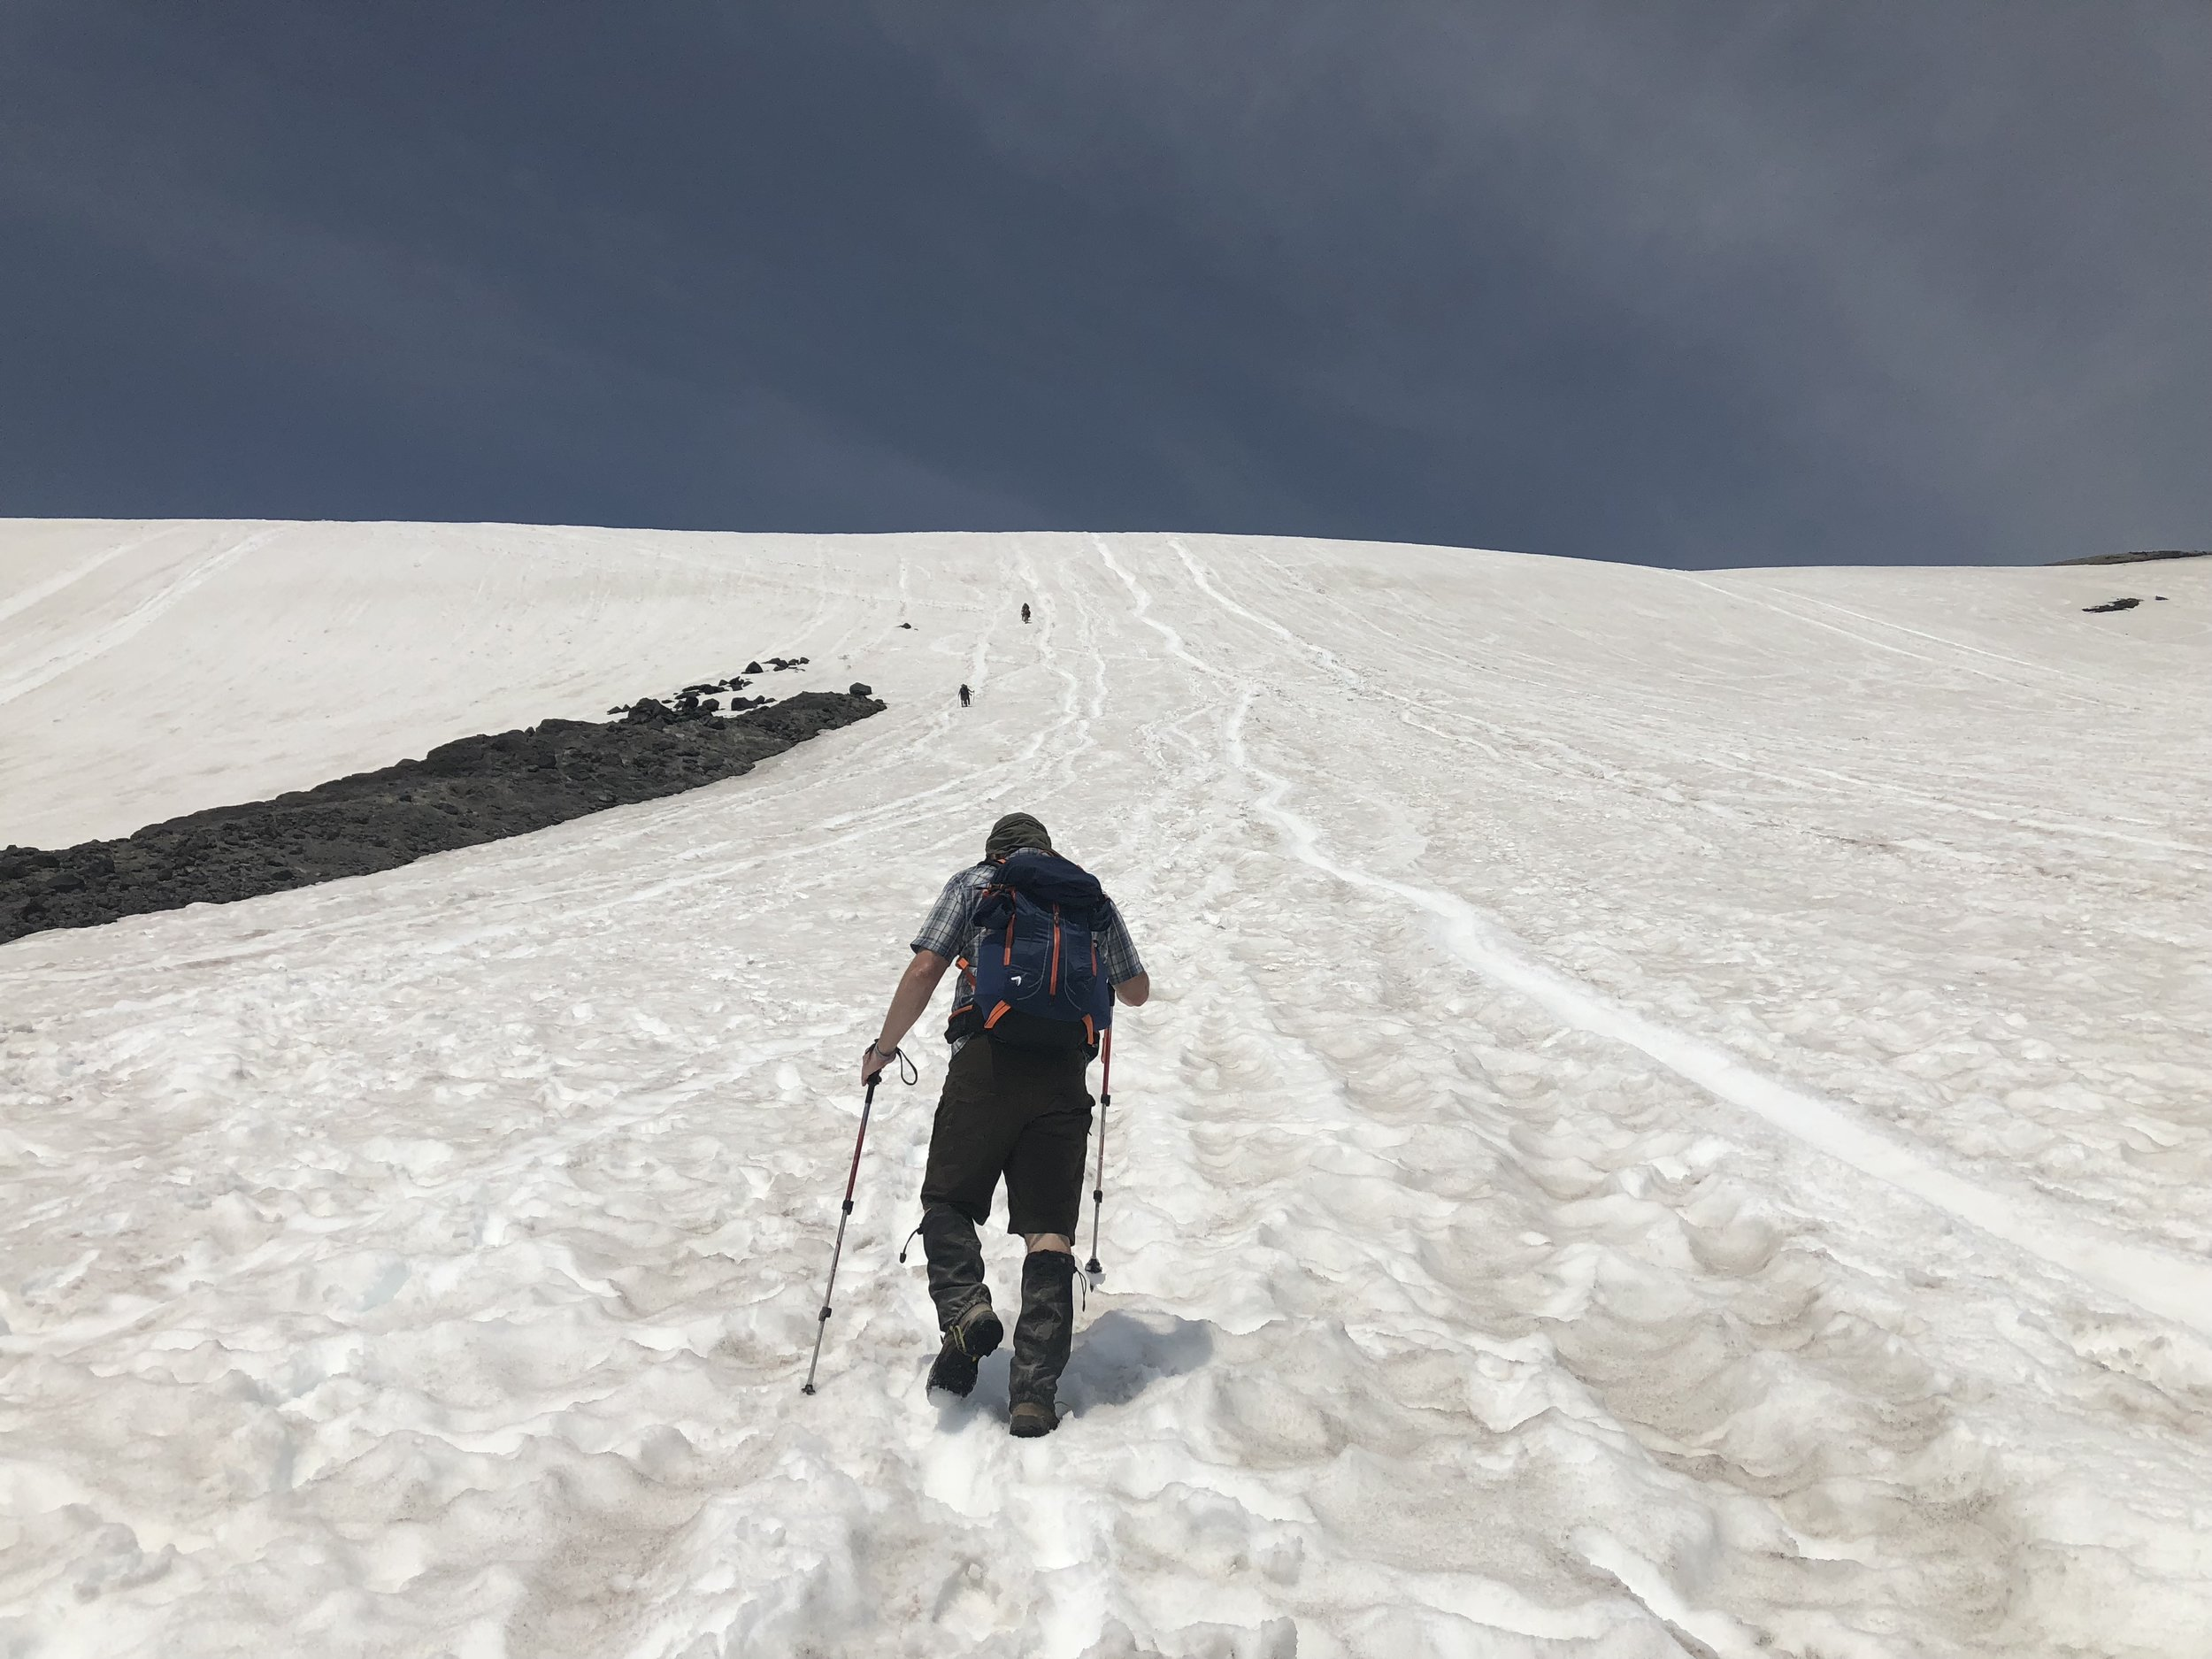 Climbing up to join the Monitor Ridge trail next to glissade paths.